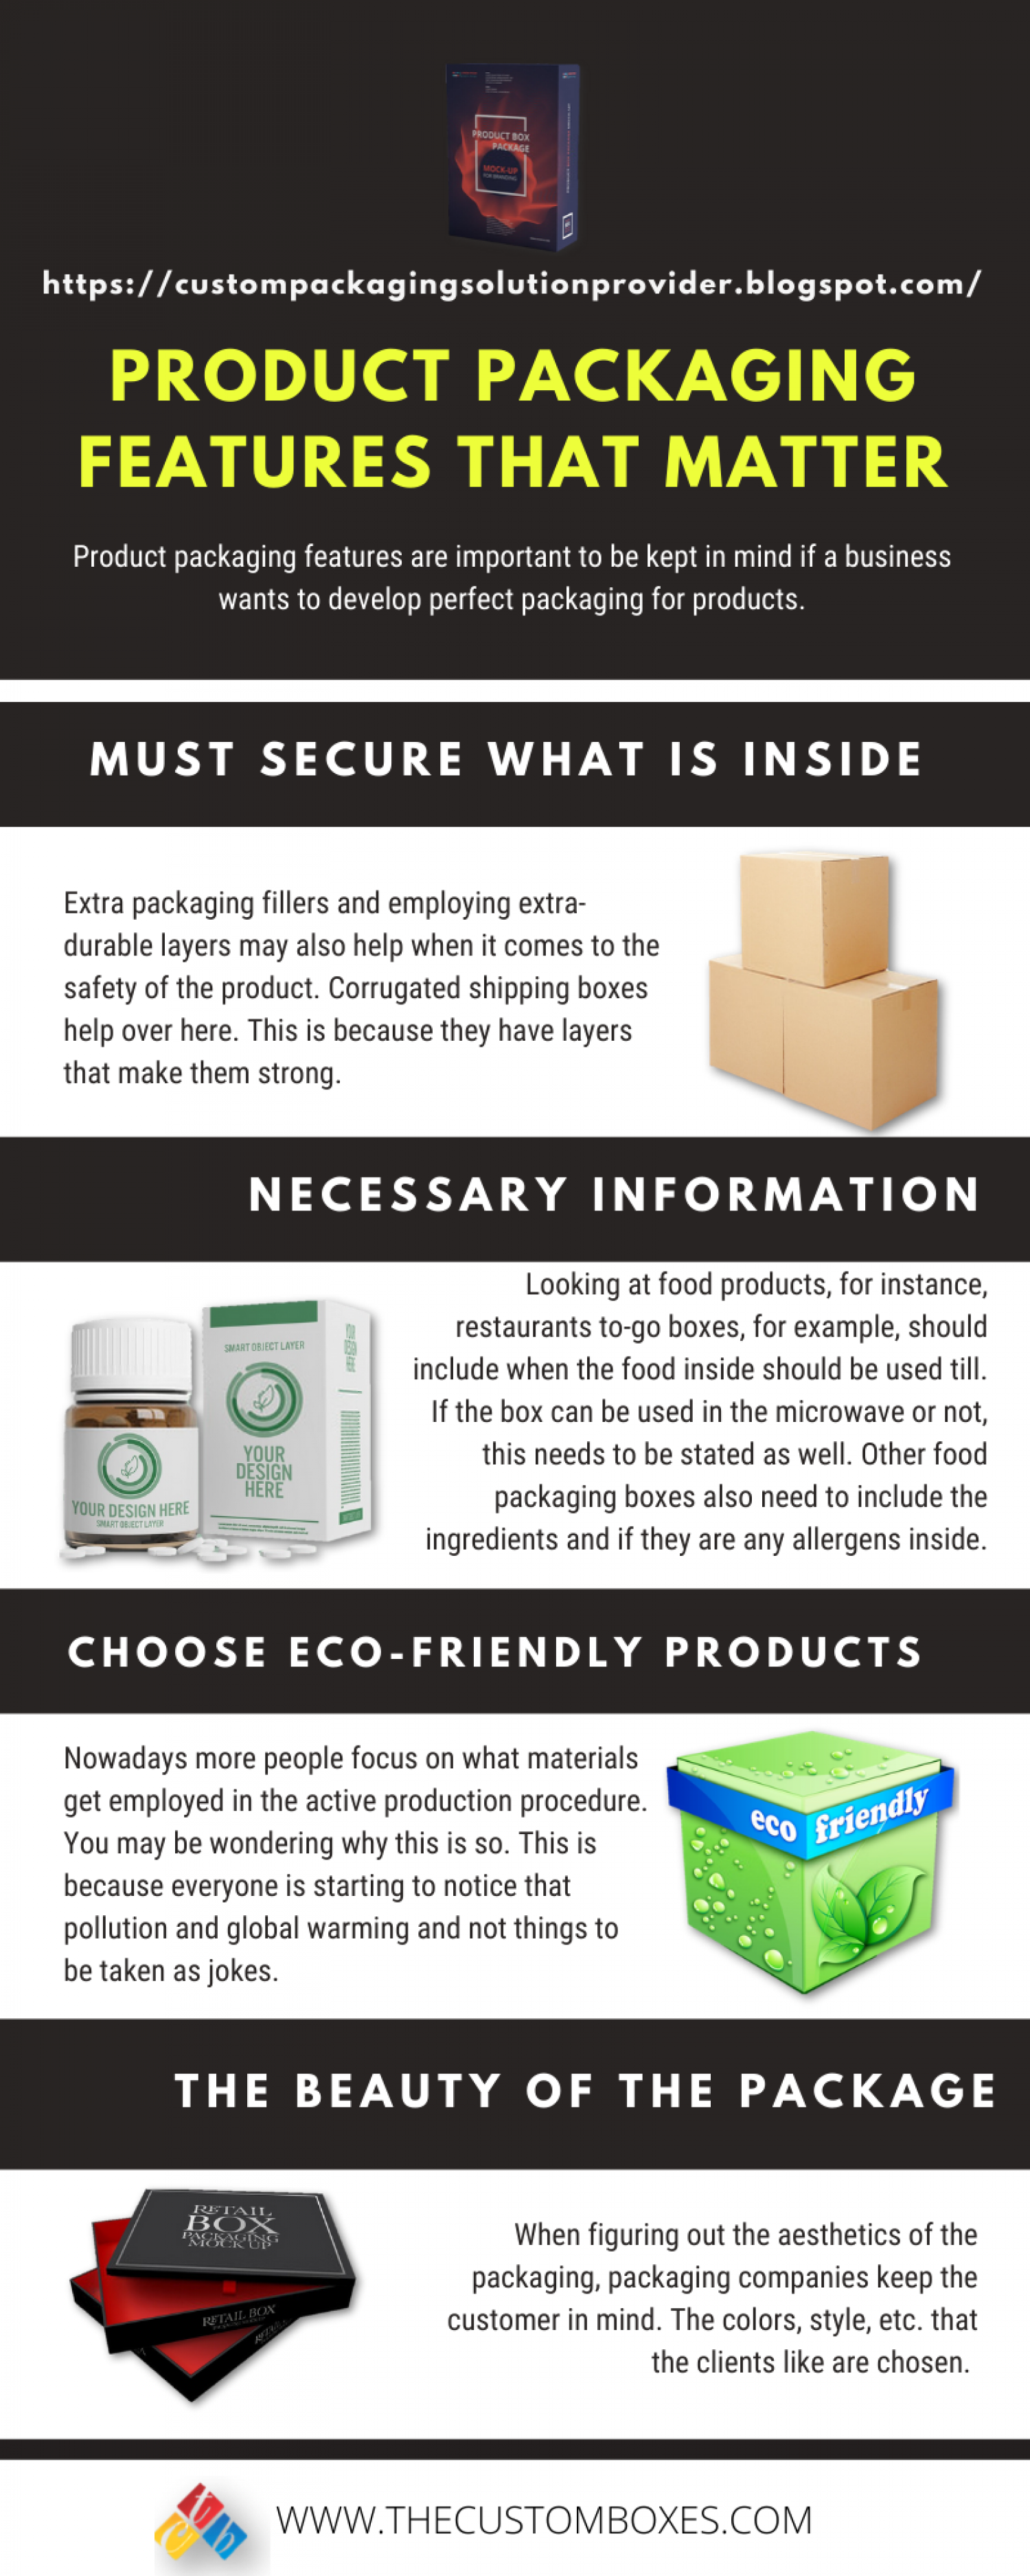 Product Packaging Features That Matter Infographic